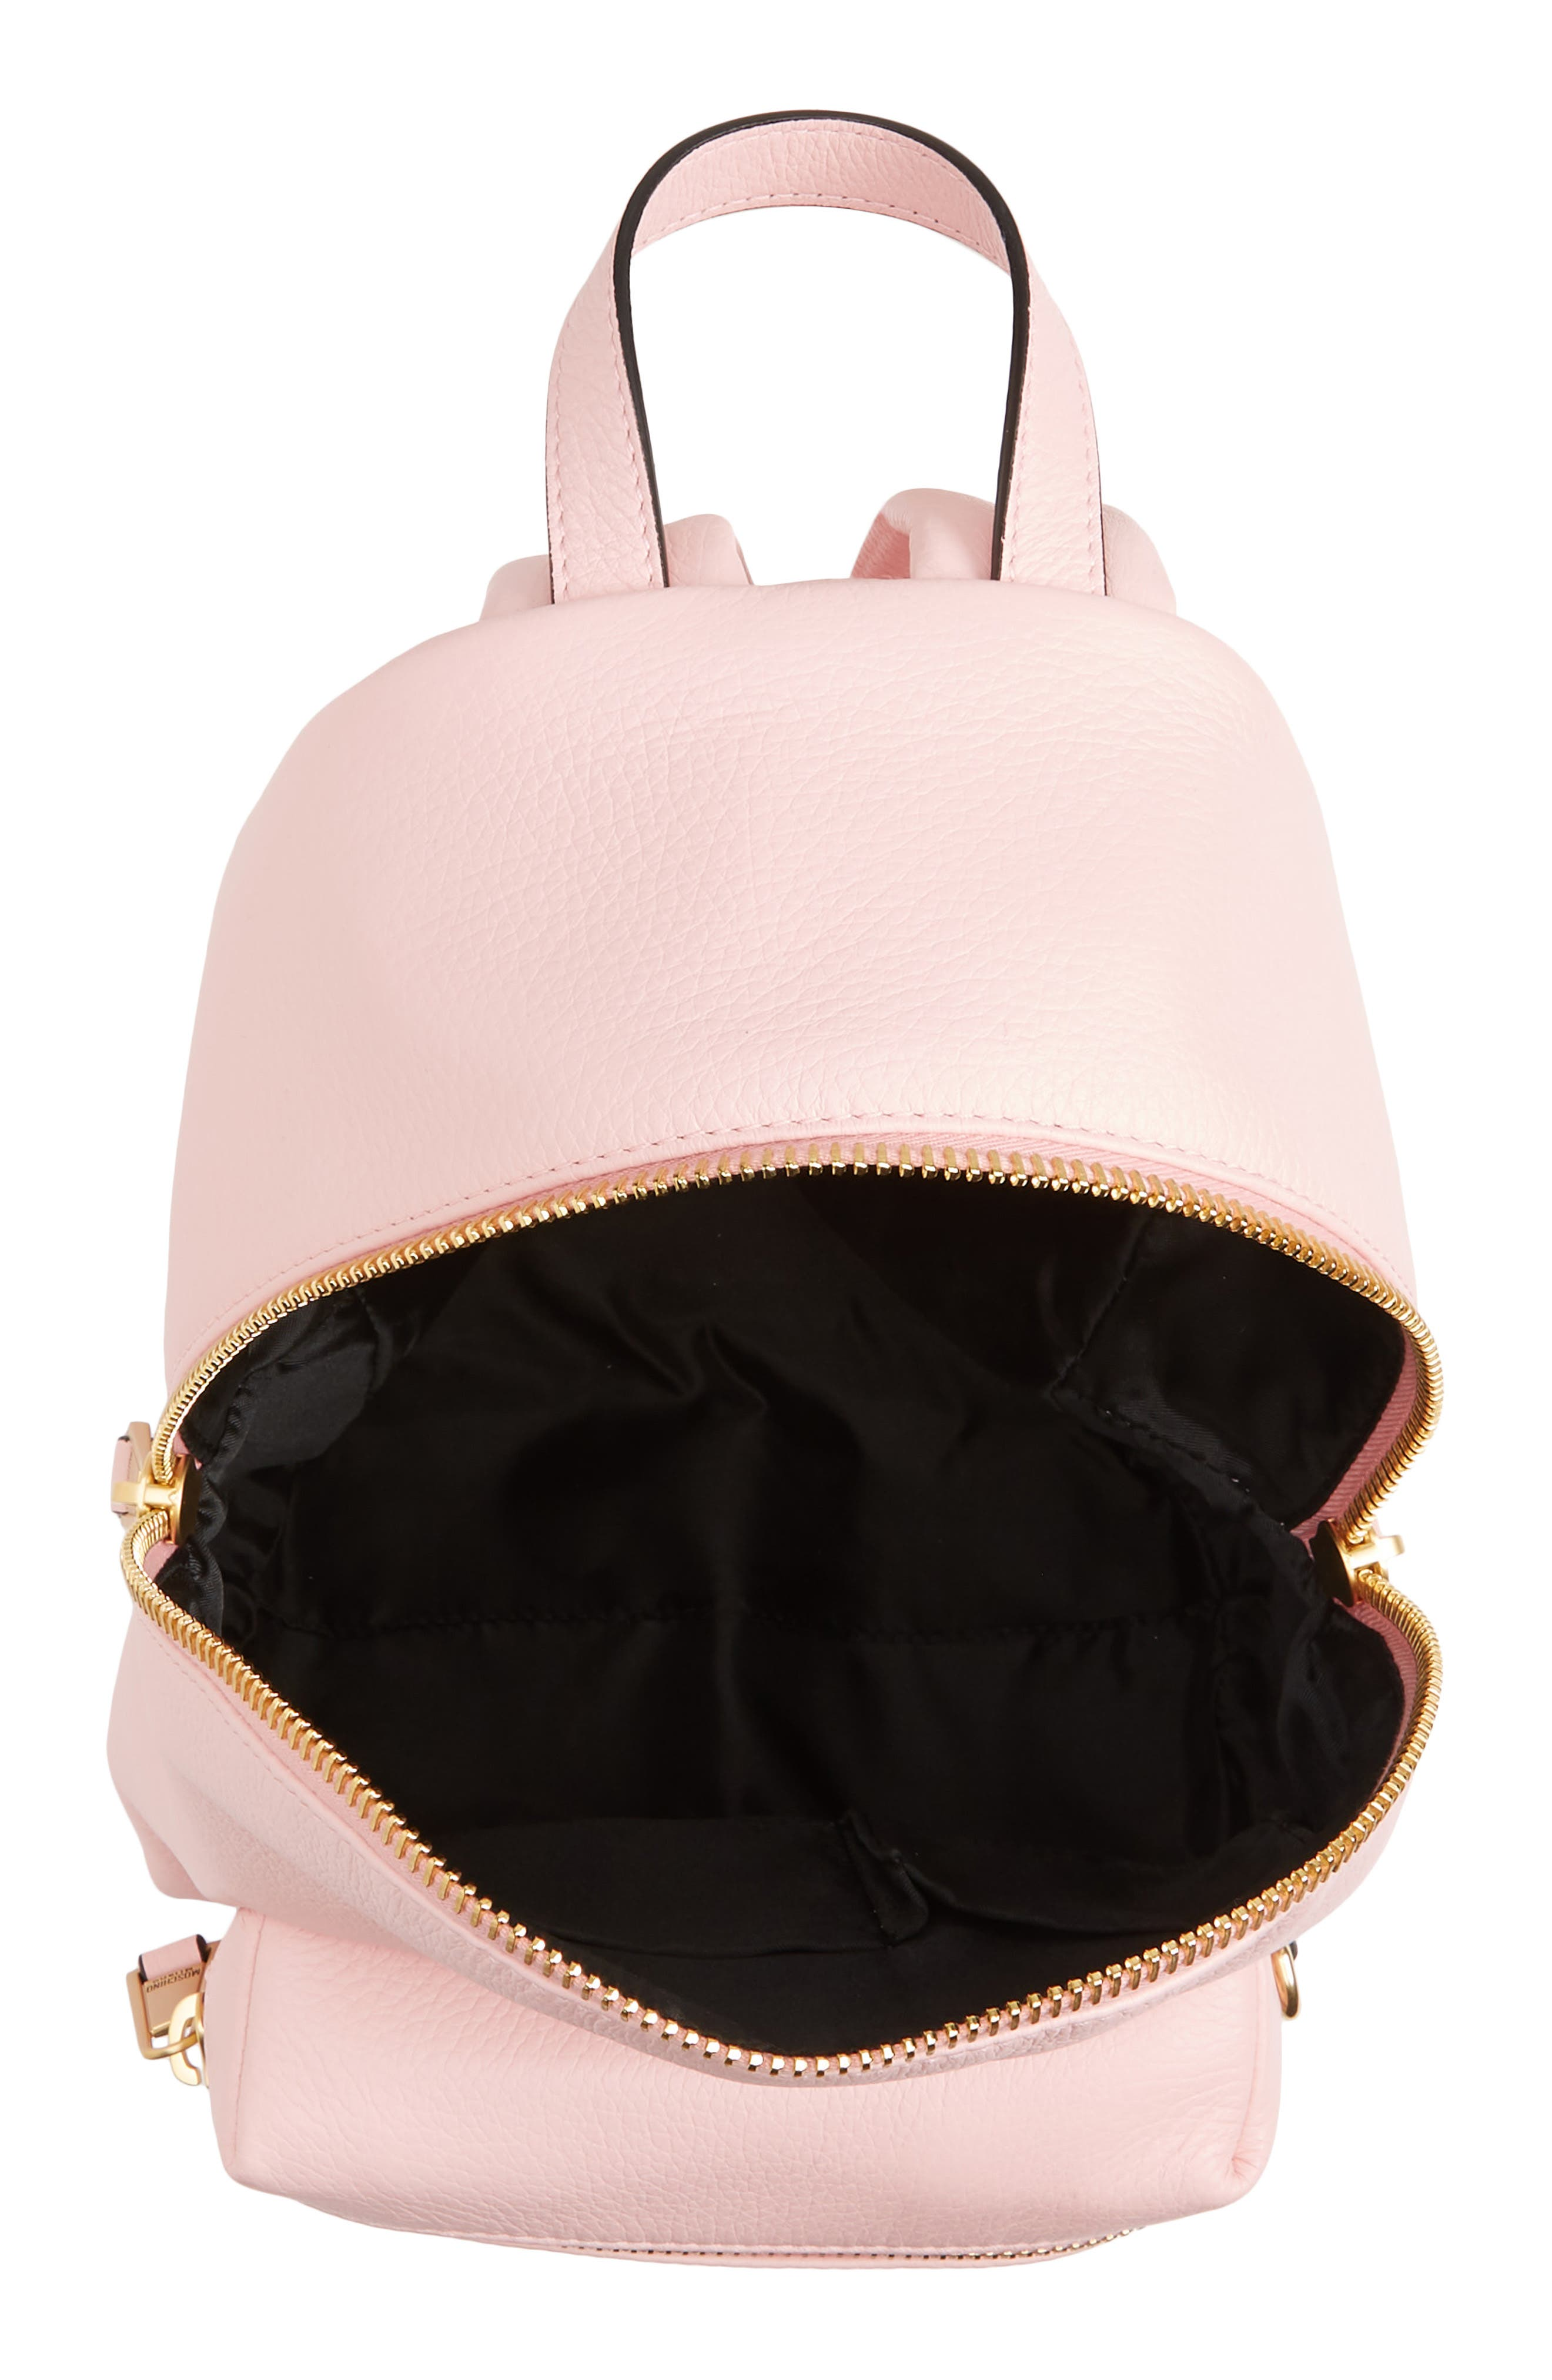 MOSCHINO,                             Logo Leather Backpack,                             Alternate thumbnail 4, color,                             PINK